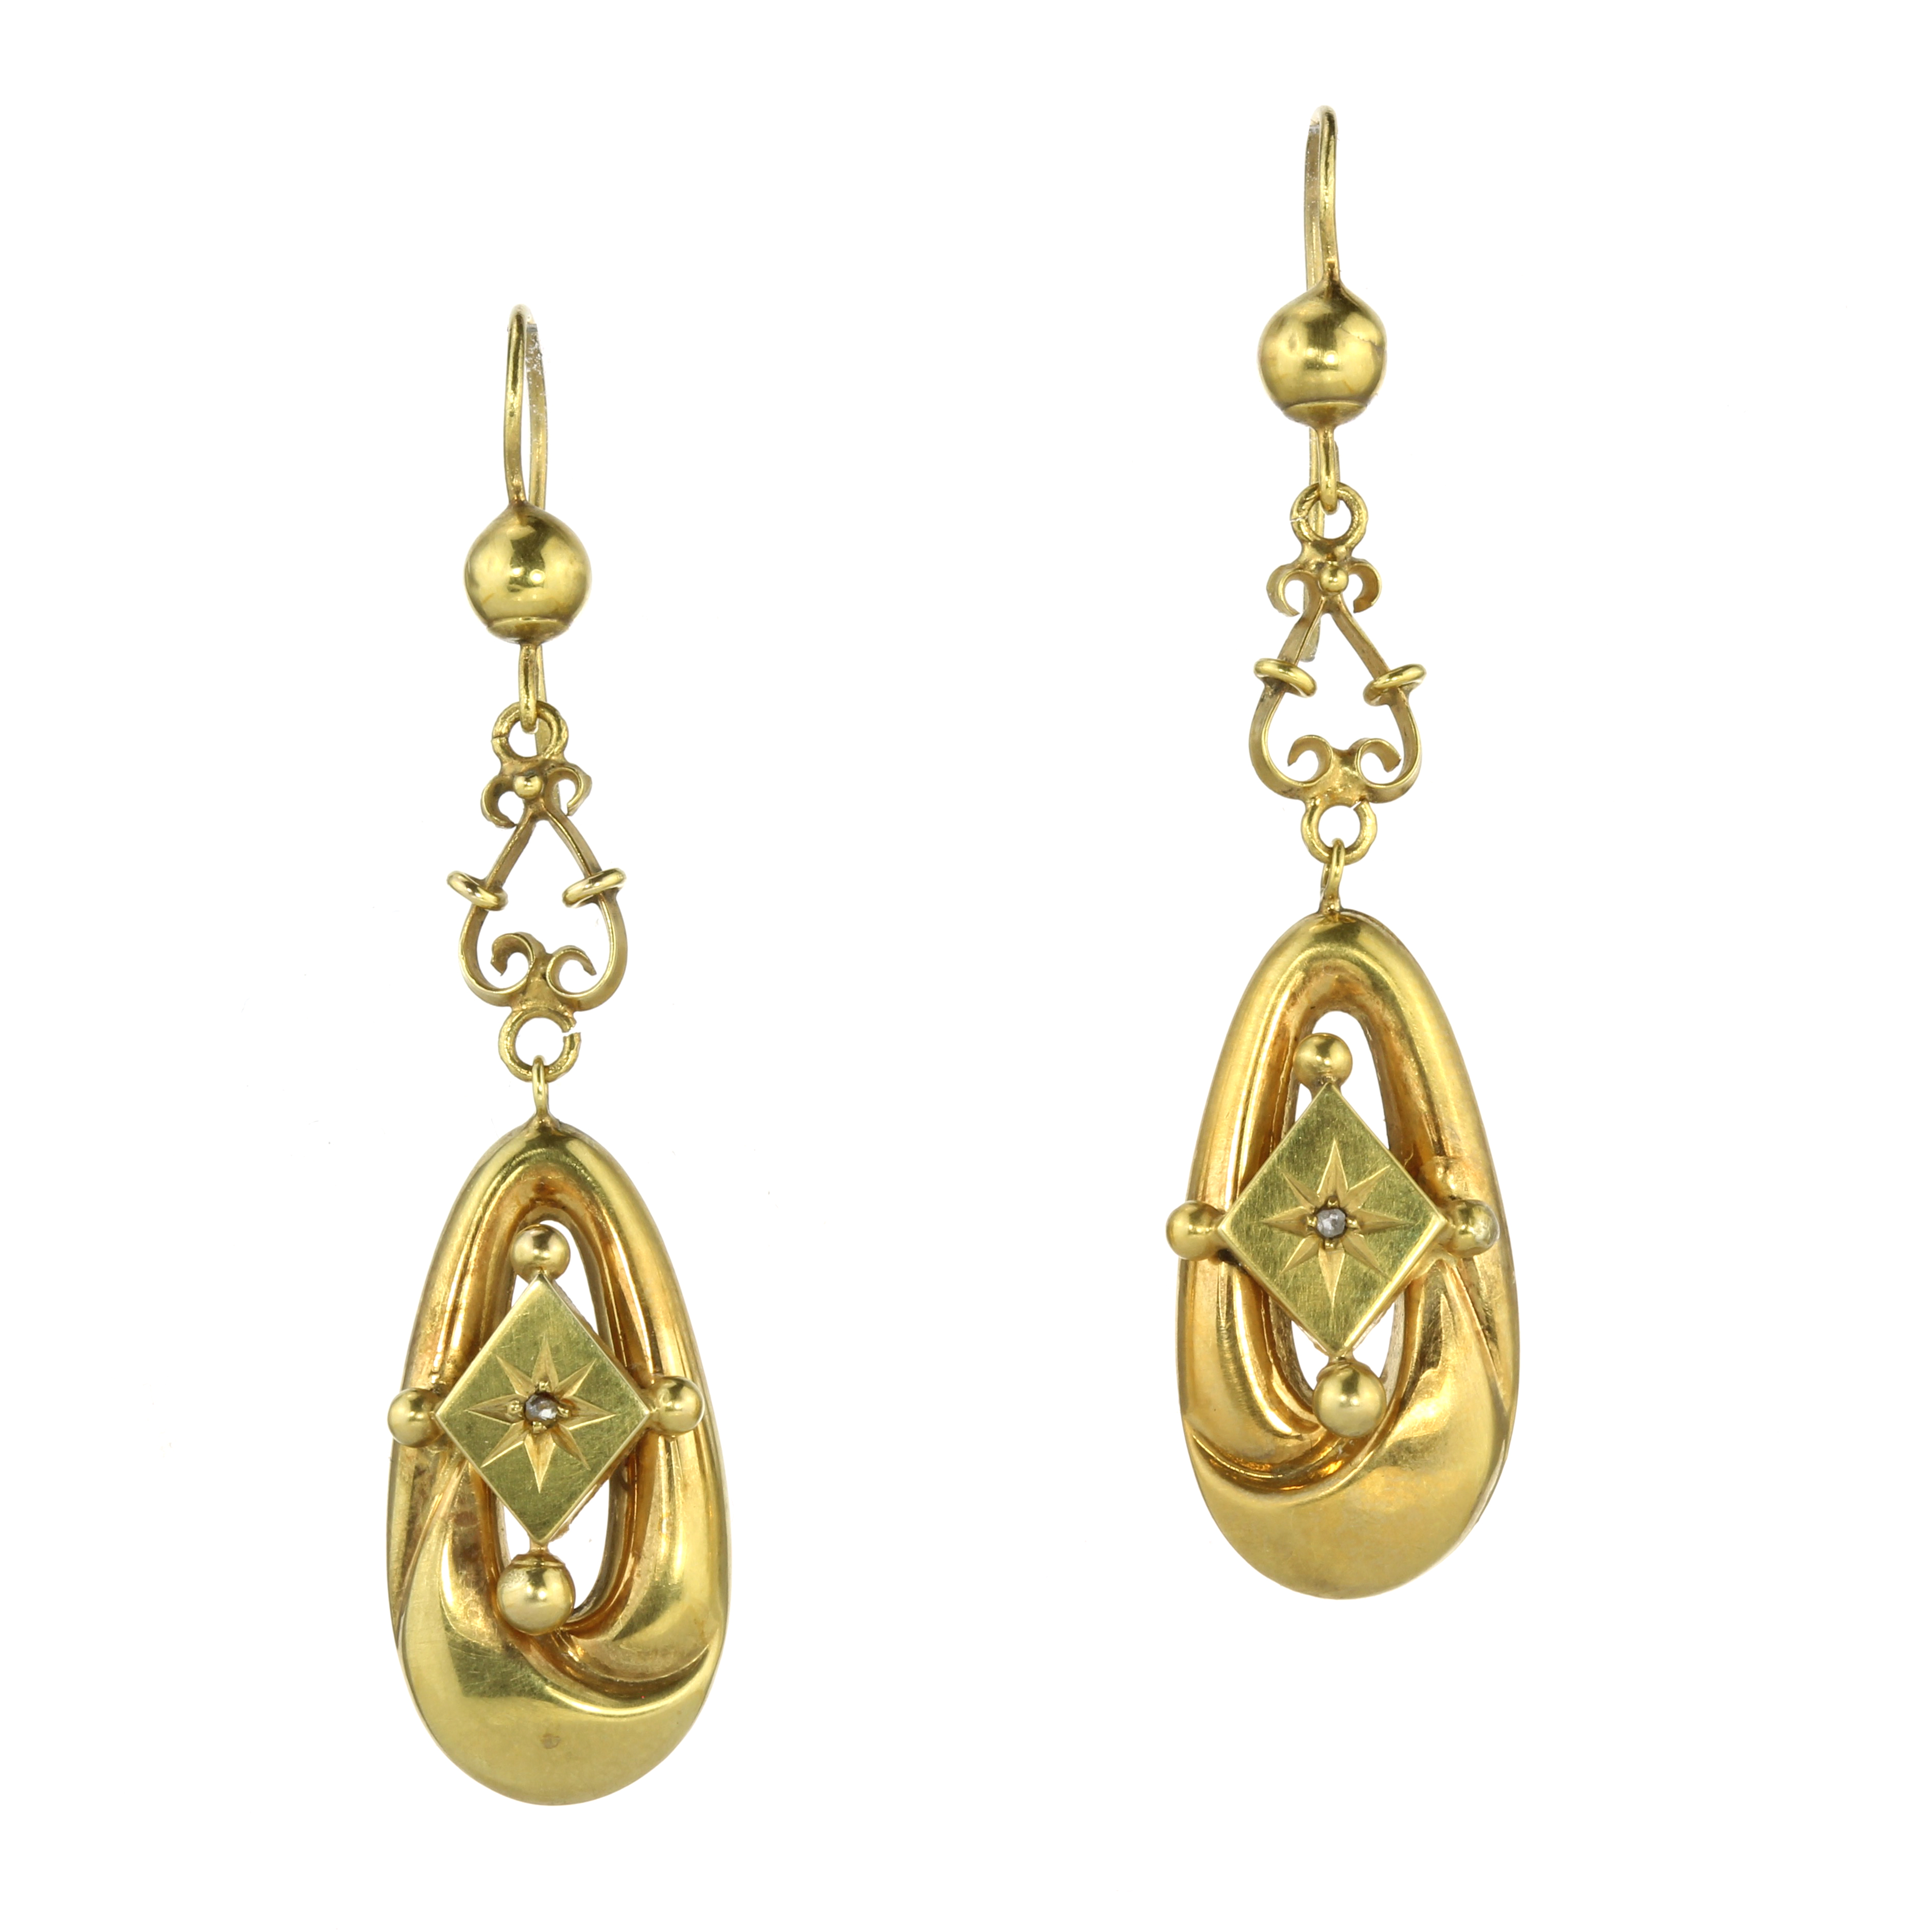 Los 2 - A PAIR OF ANTIQUE DIAMOND DROP EARRINGS in high carat yellow gold, each set with a rose cut